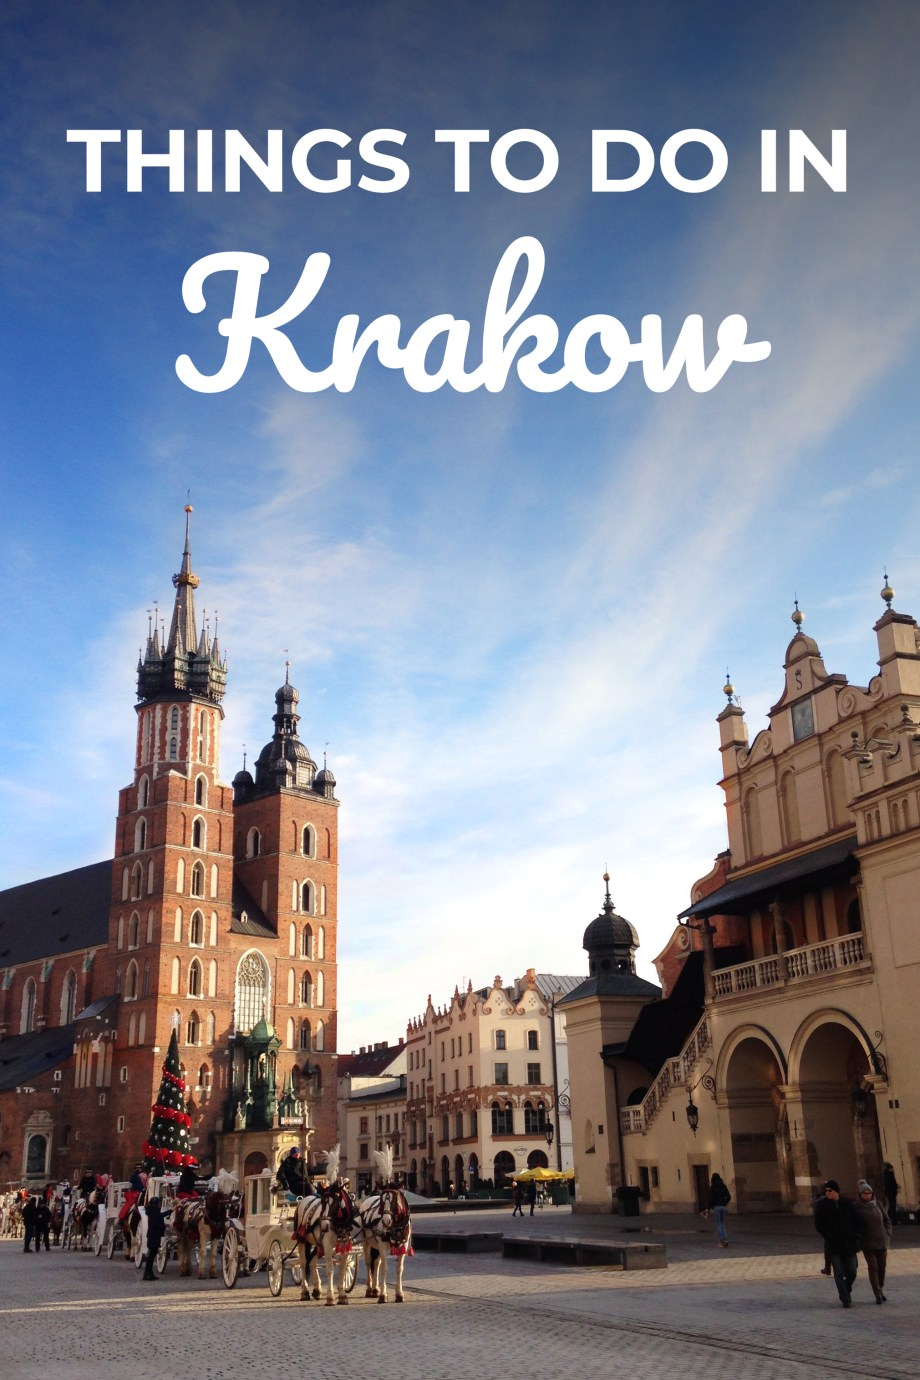 Krakow is one of the oldest cities in Poland, there is so much to see and do in the city and surrounding area. Here is a guide to some of the highlights